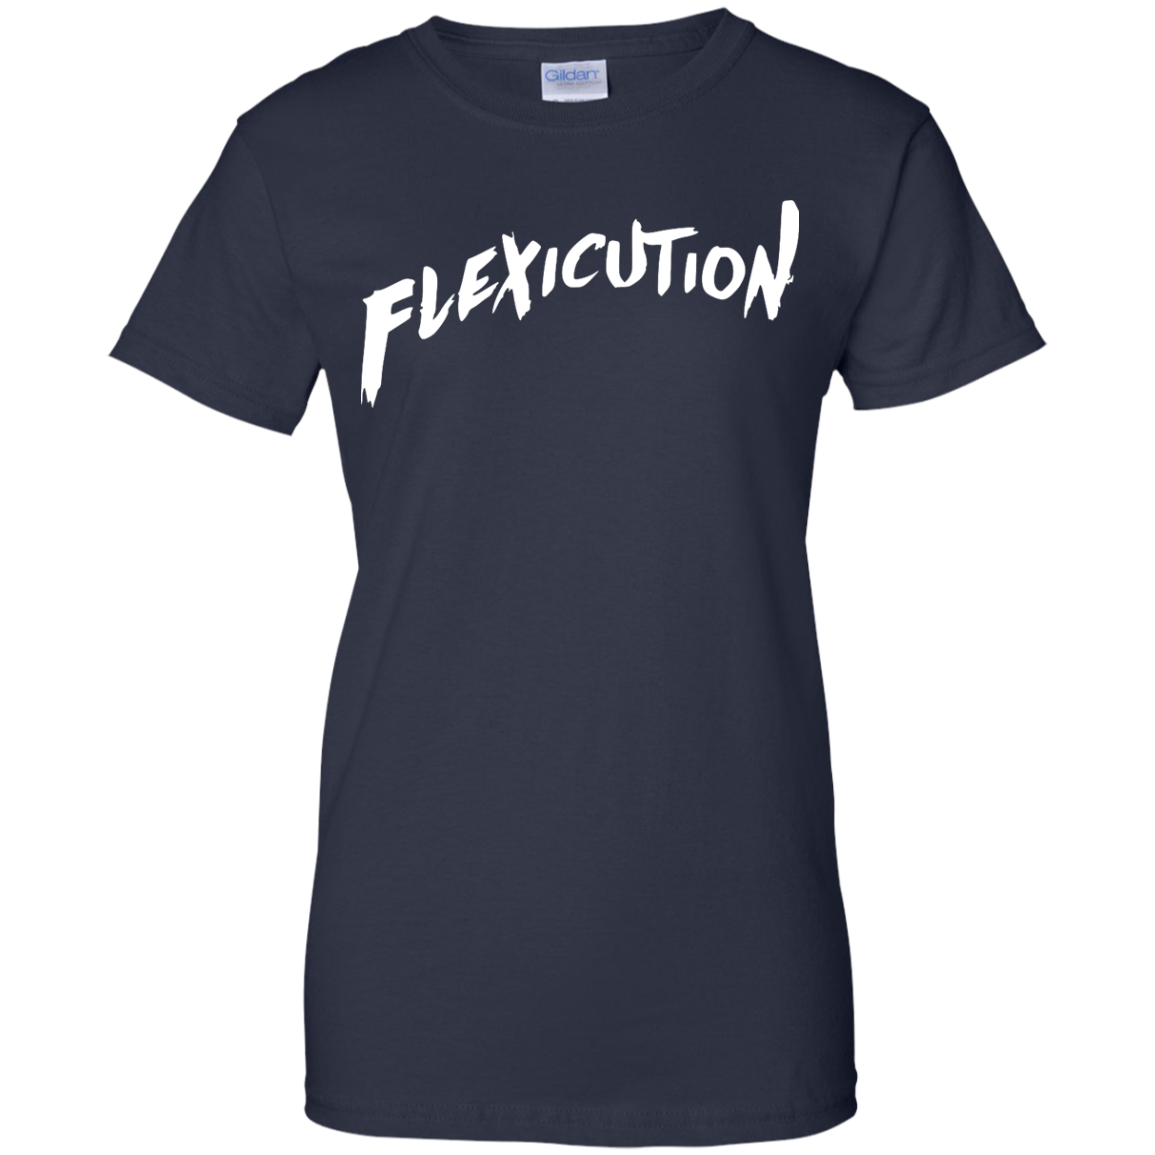 image 540px Flexicution Logic T Shirt, Hoodies, Tank Top